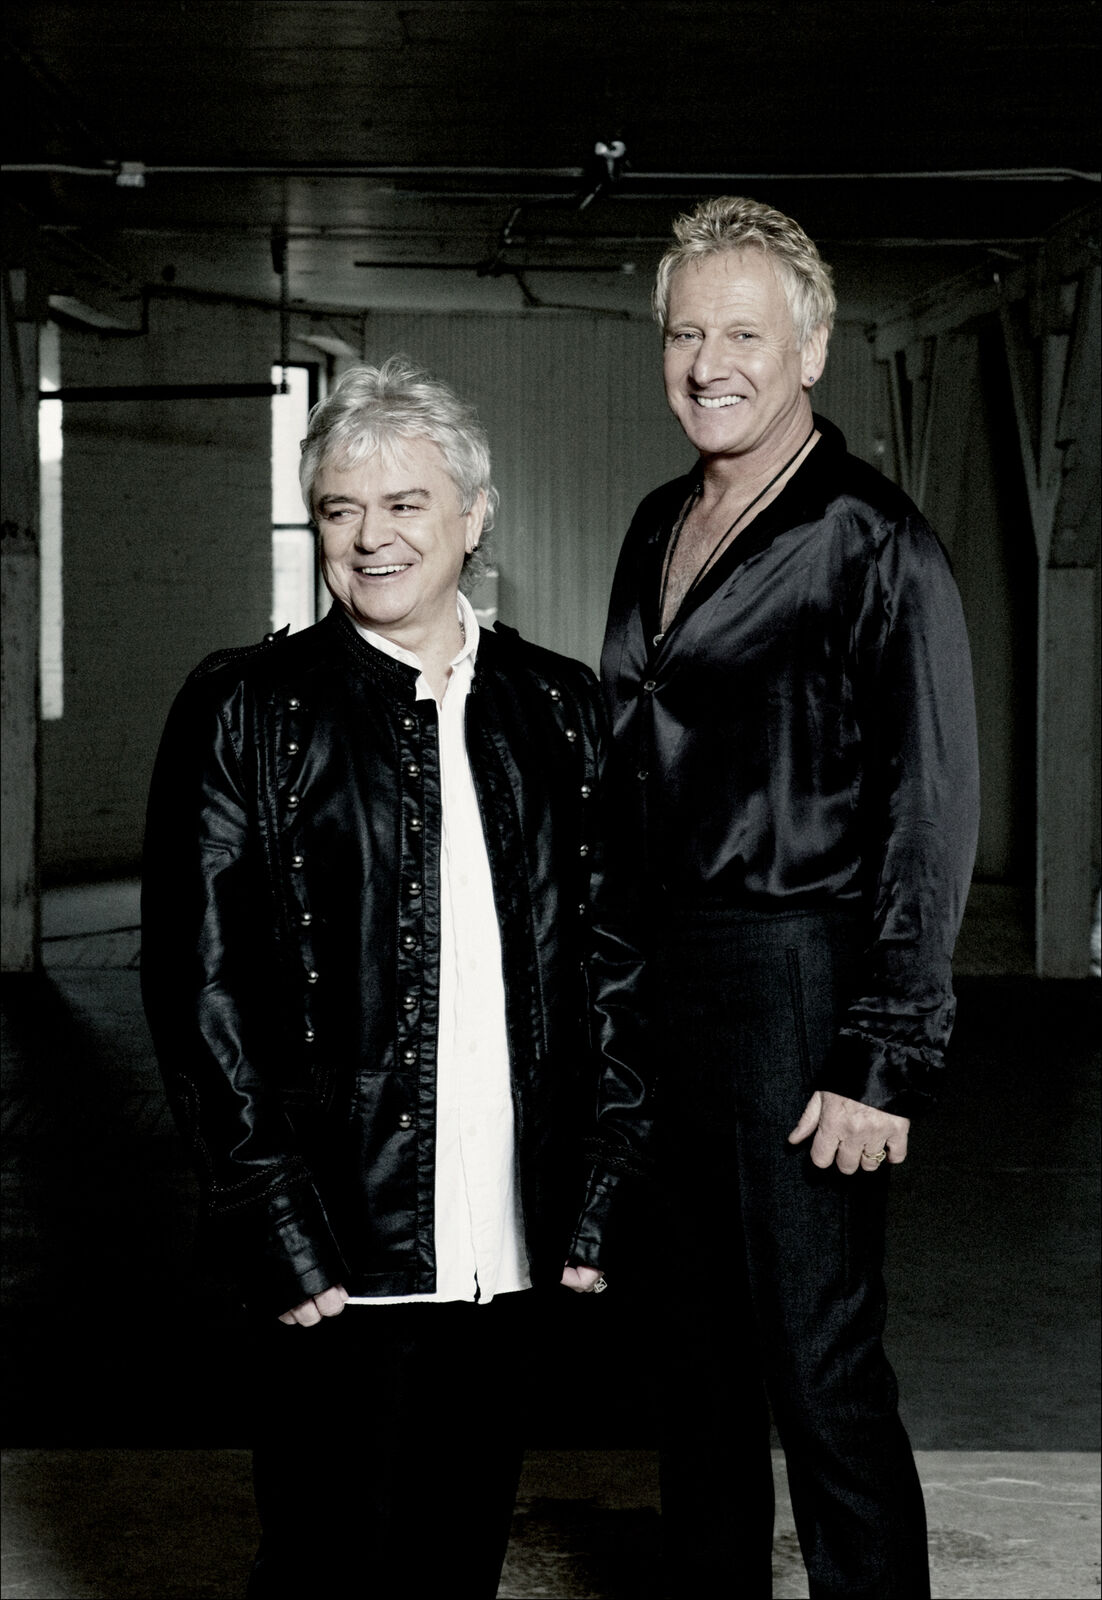 2d87d756884e Air Supply Porterville Tickets - Air Supply 6 8 2019 Eagle Mountain Casino  Tickets on StubHub!